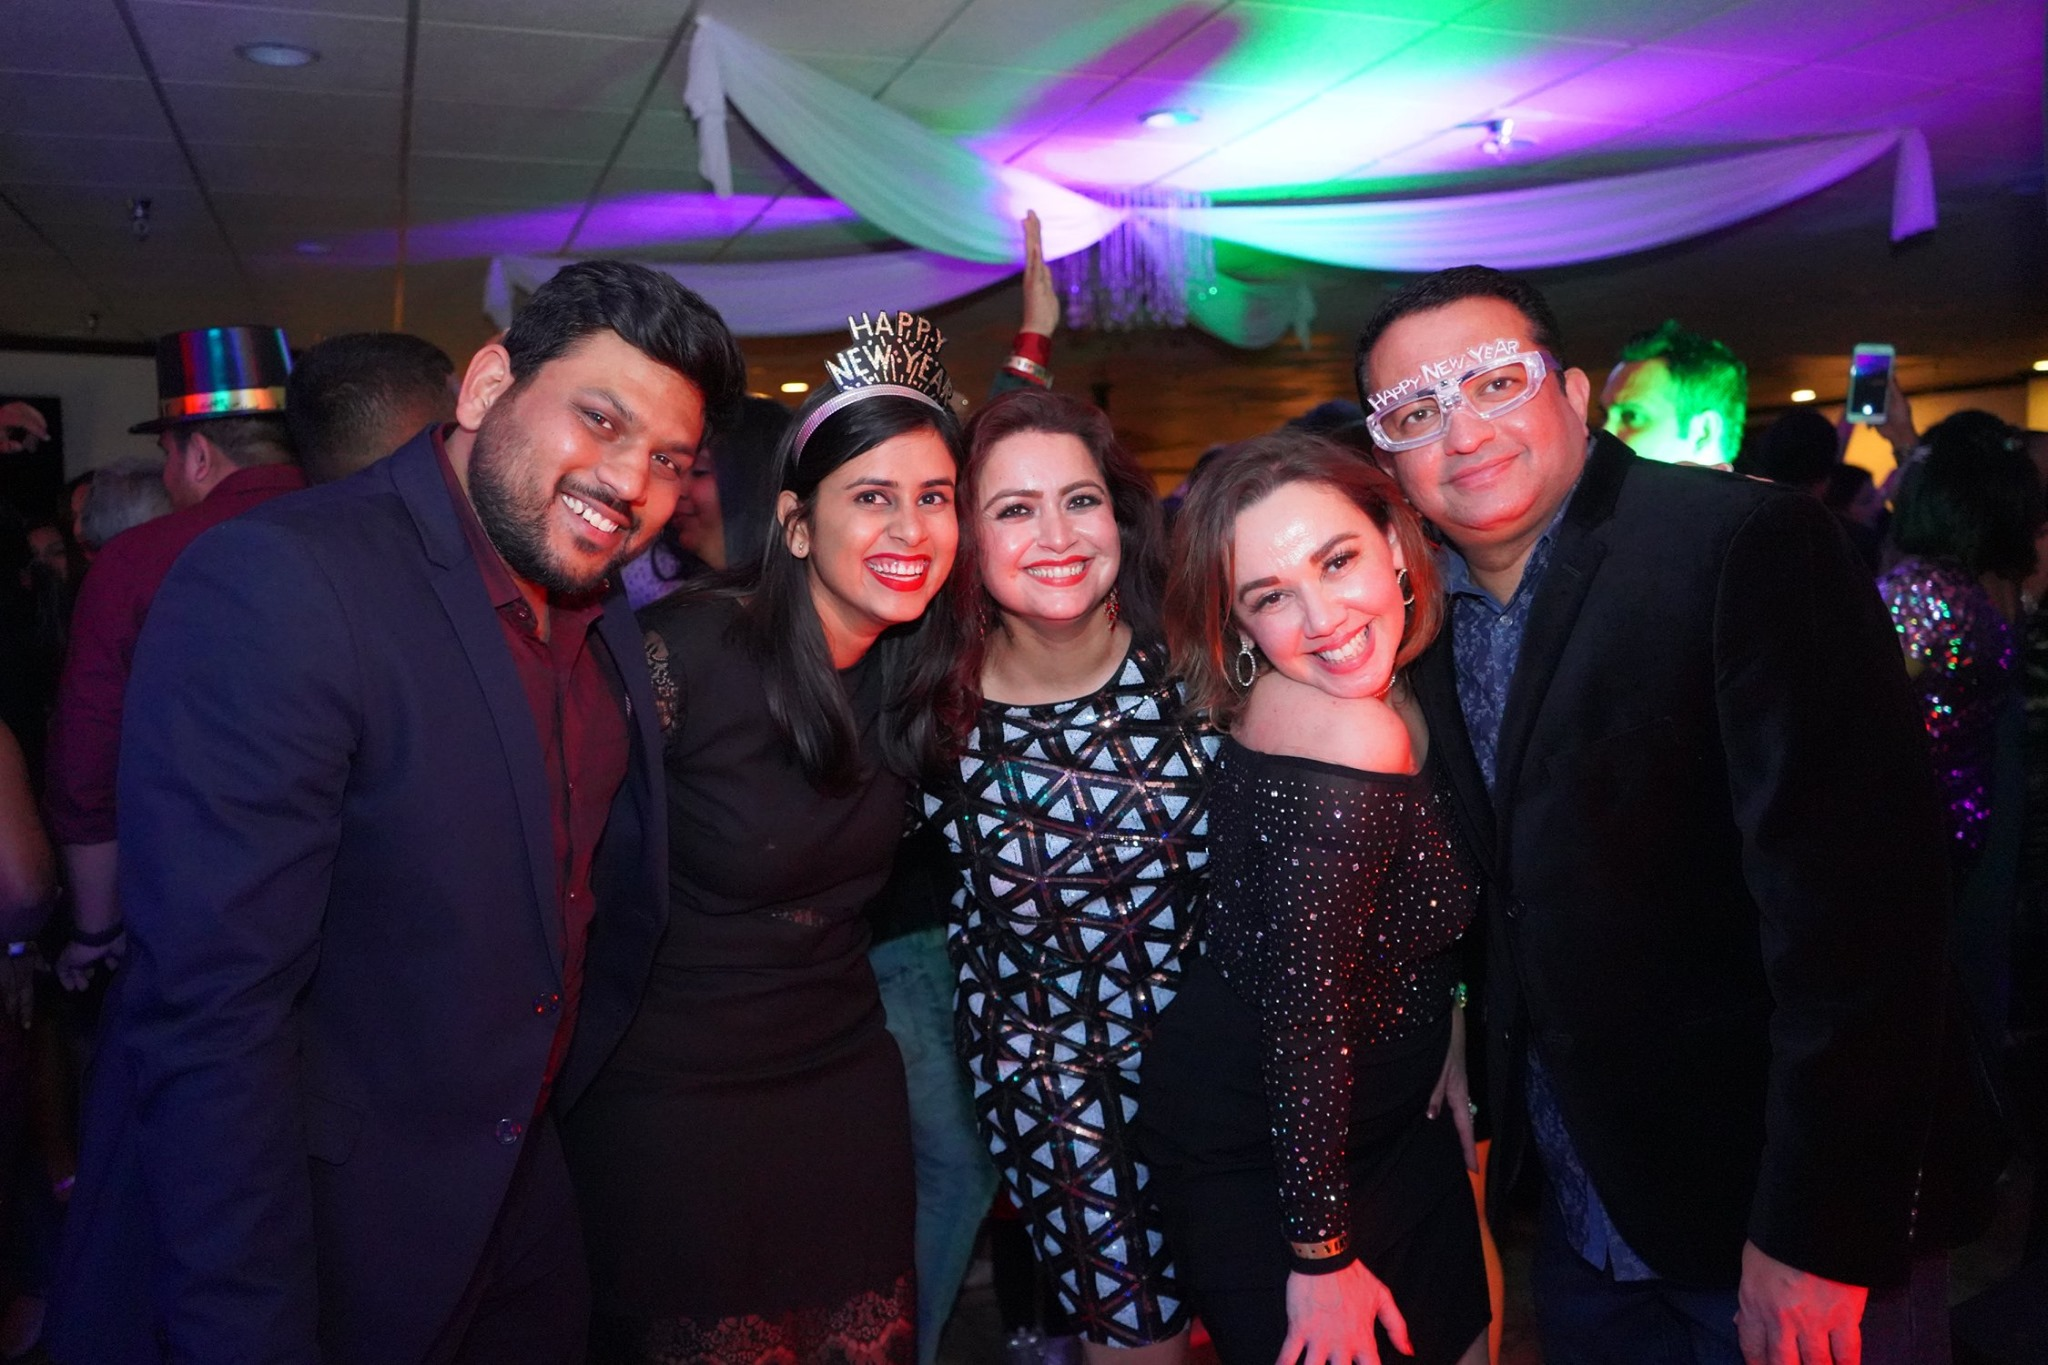 New Year's Eve 2020 Bollywood Party organized by Our Indian Culture in Anaheim CA